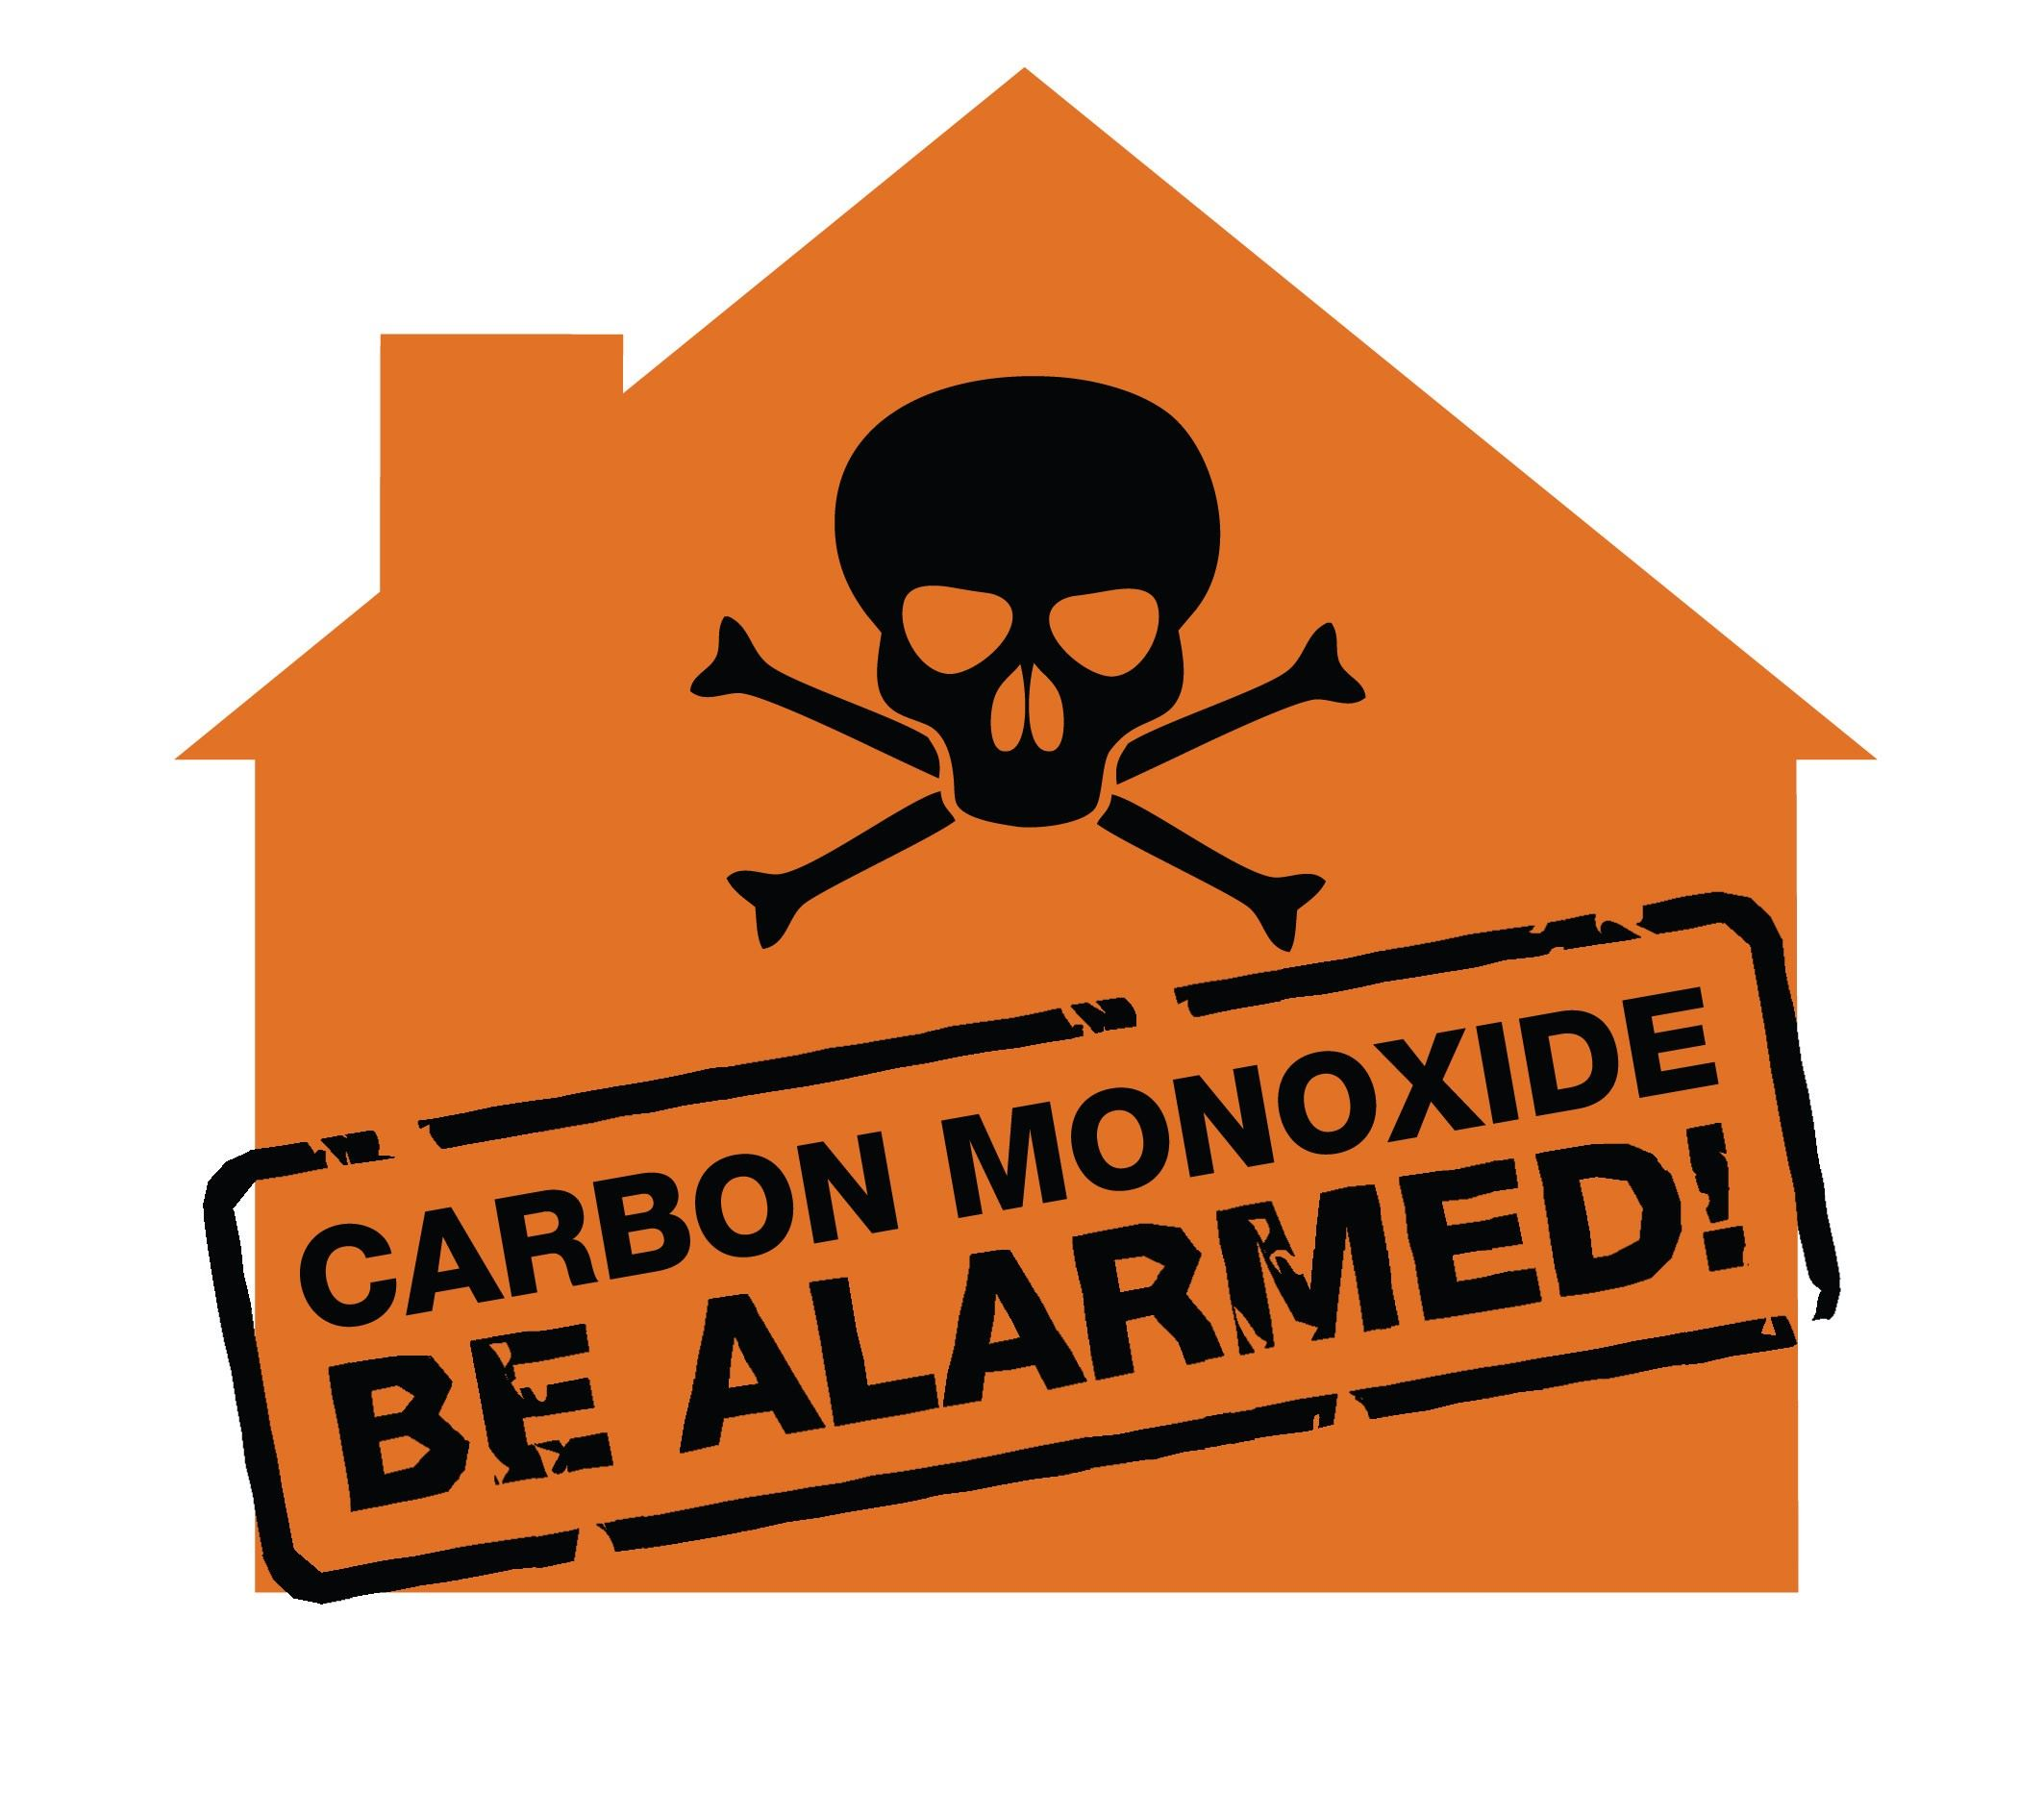 Carbon Monoxide Be Alarmed